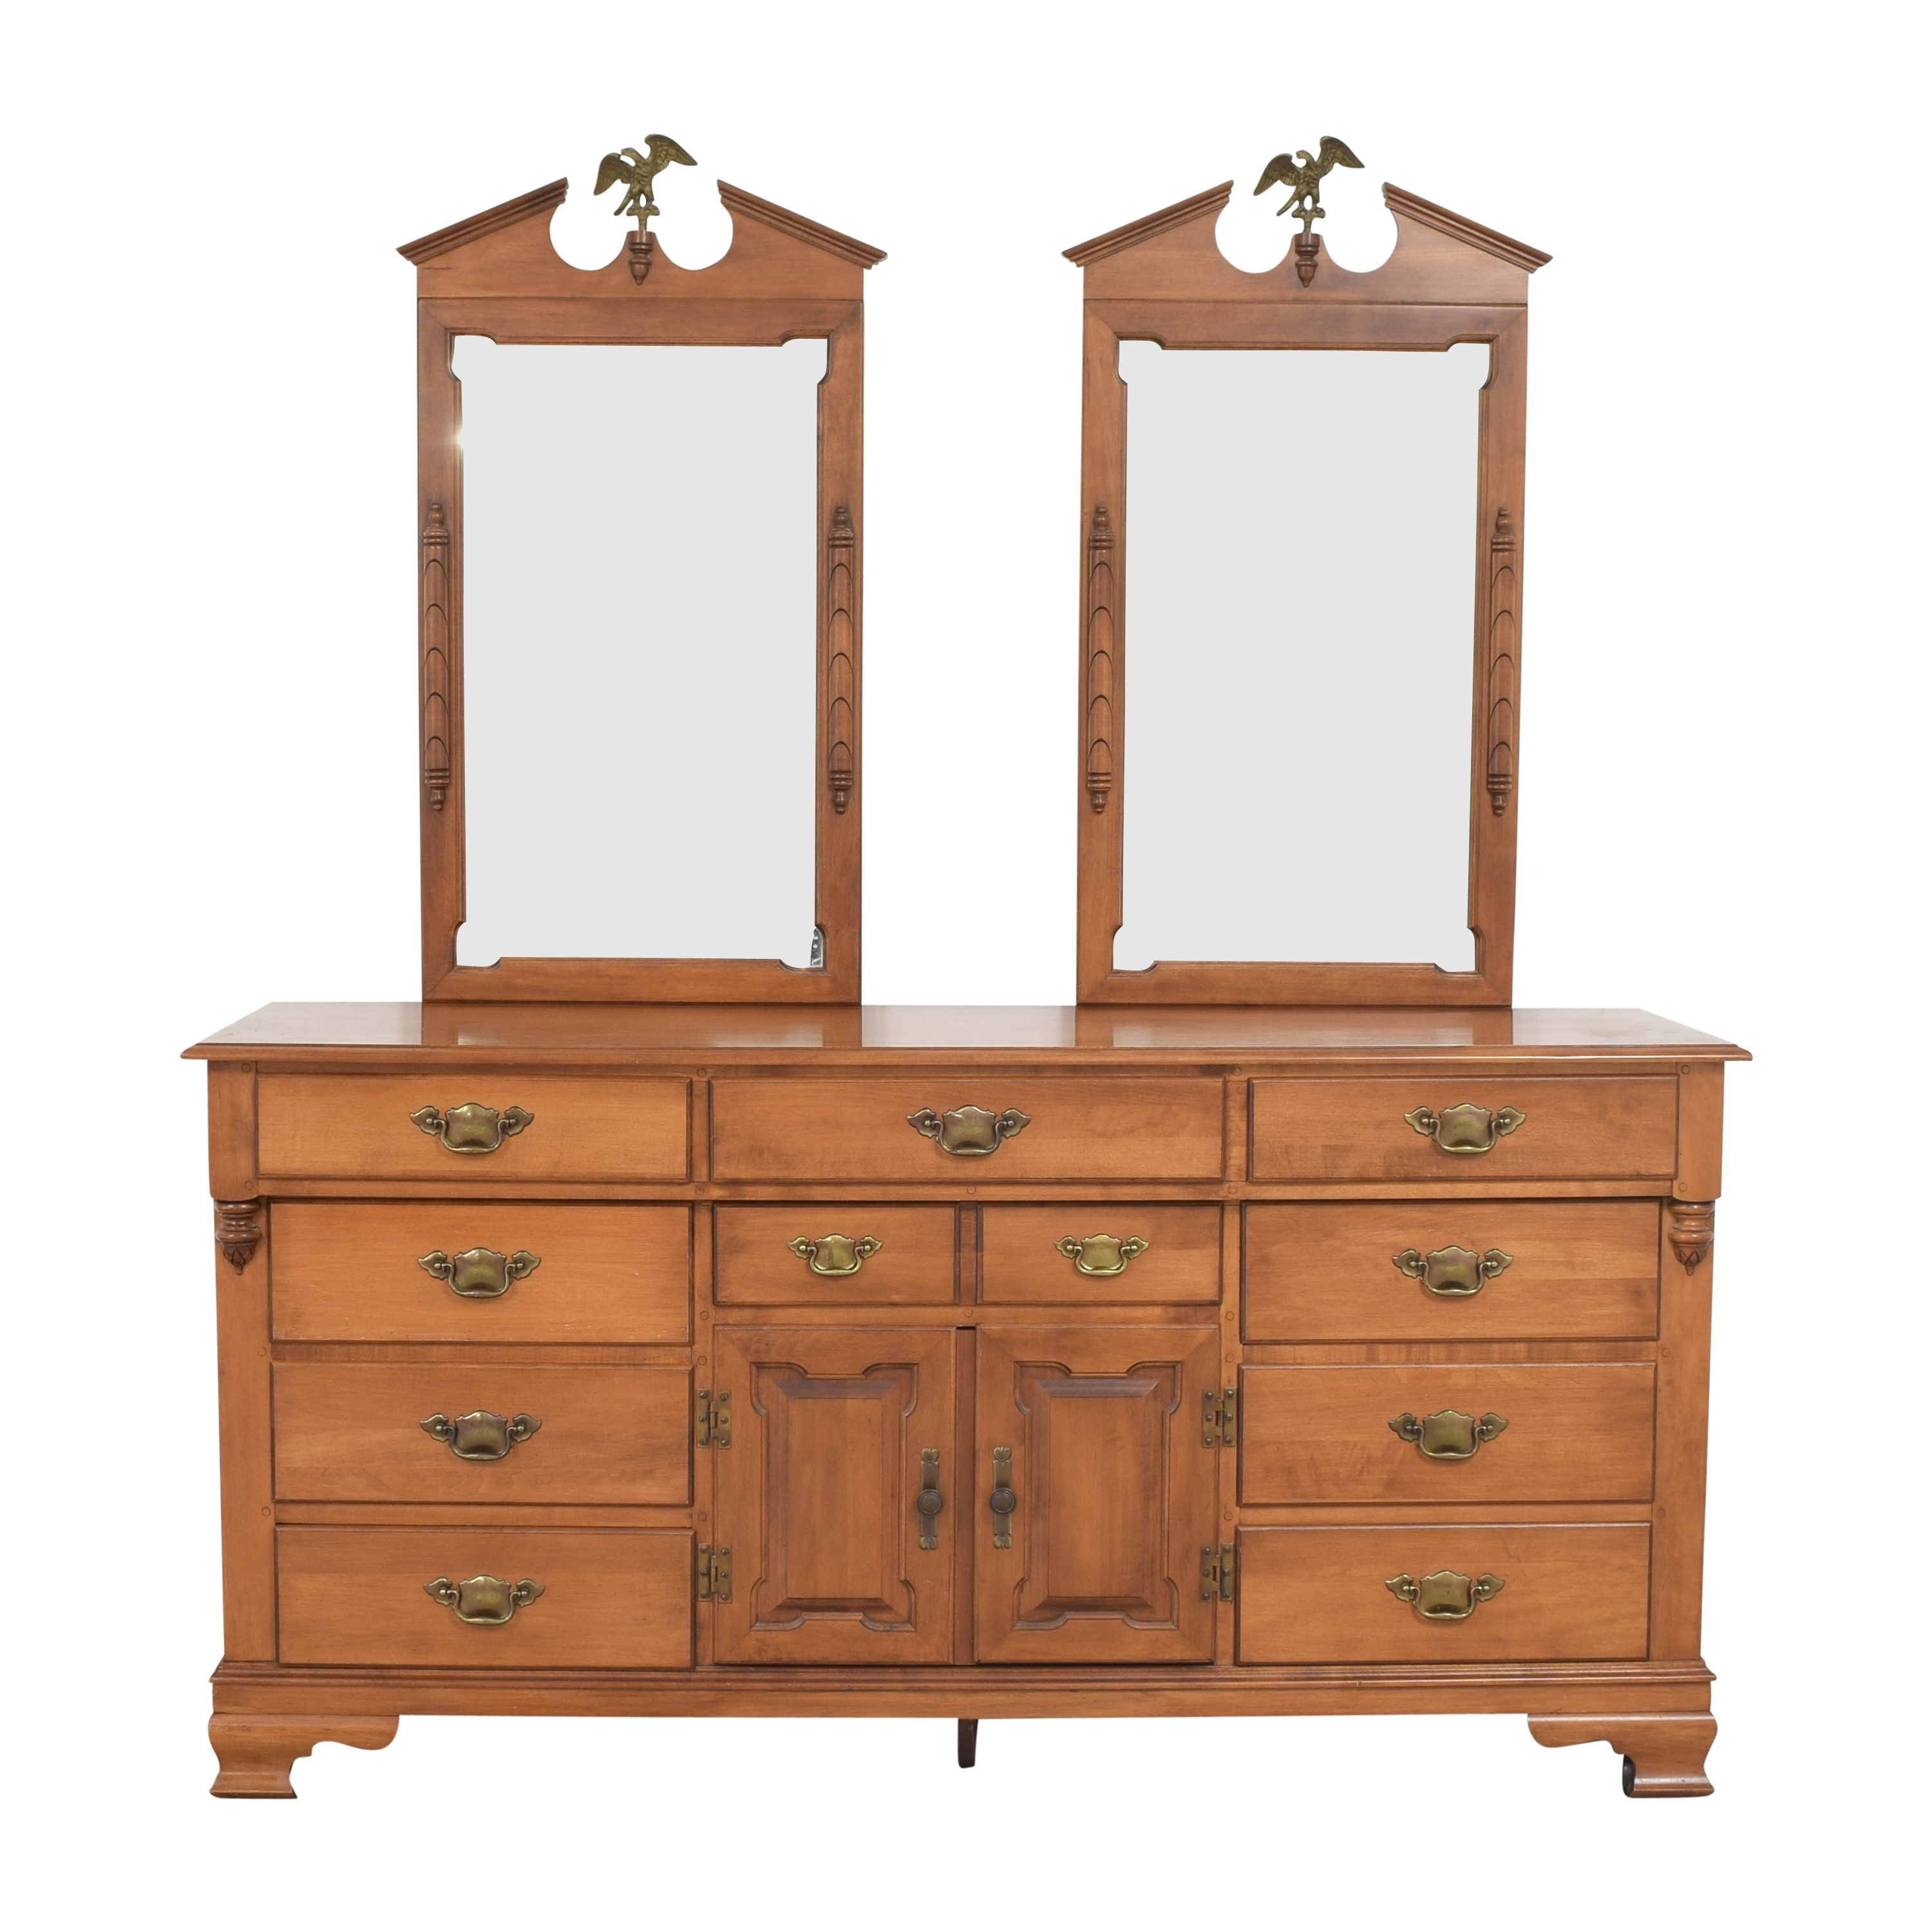 buy Tell City Young Republic Dresser with Mirrors Tell City